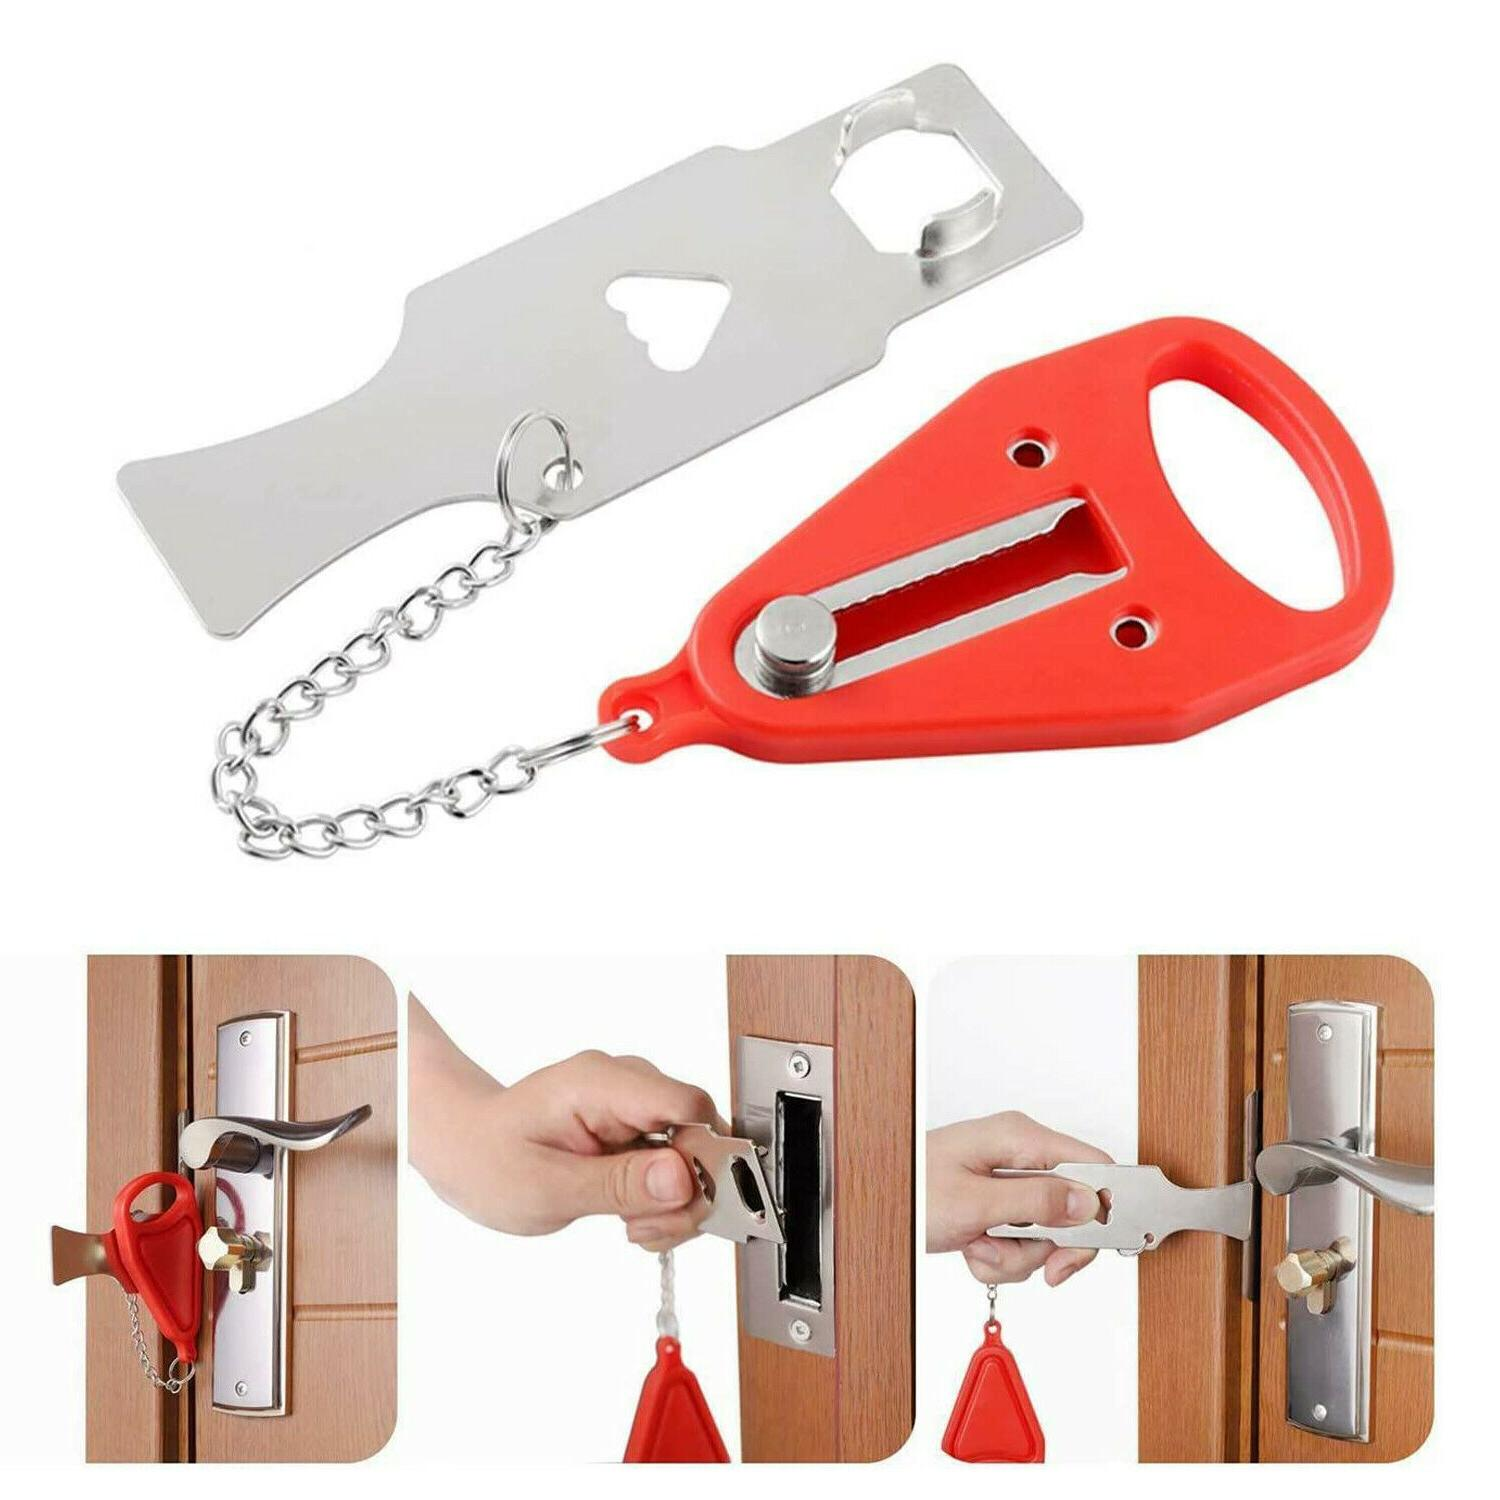 2SET Portable Security Door Lock Hardware Safety Tool Home P